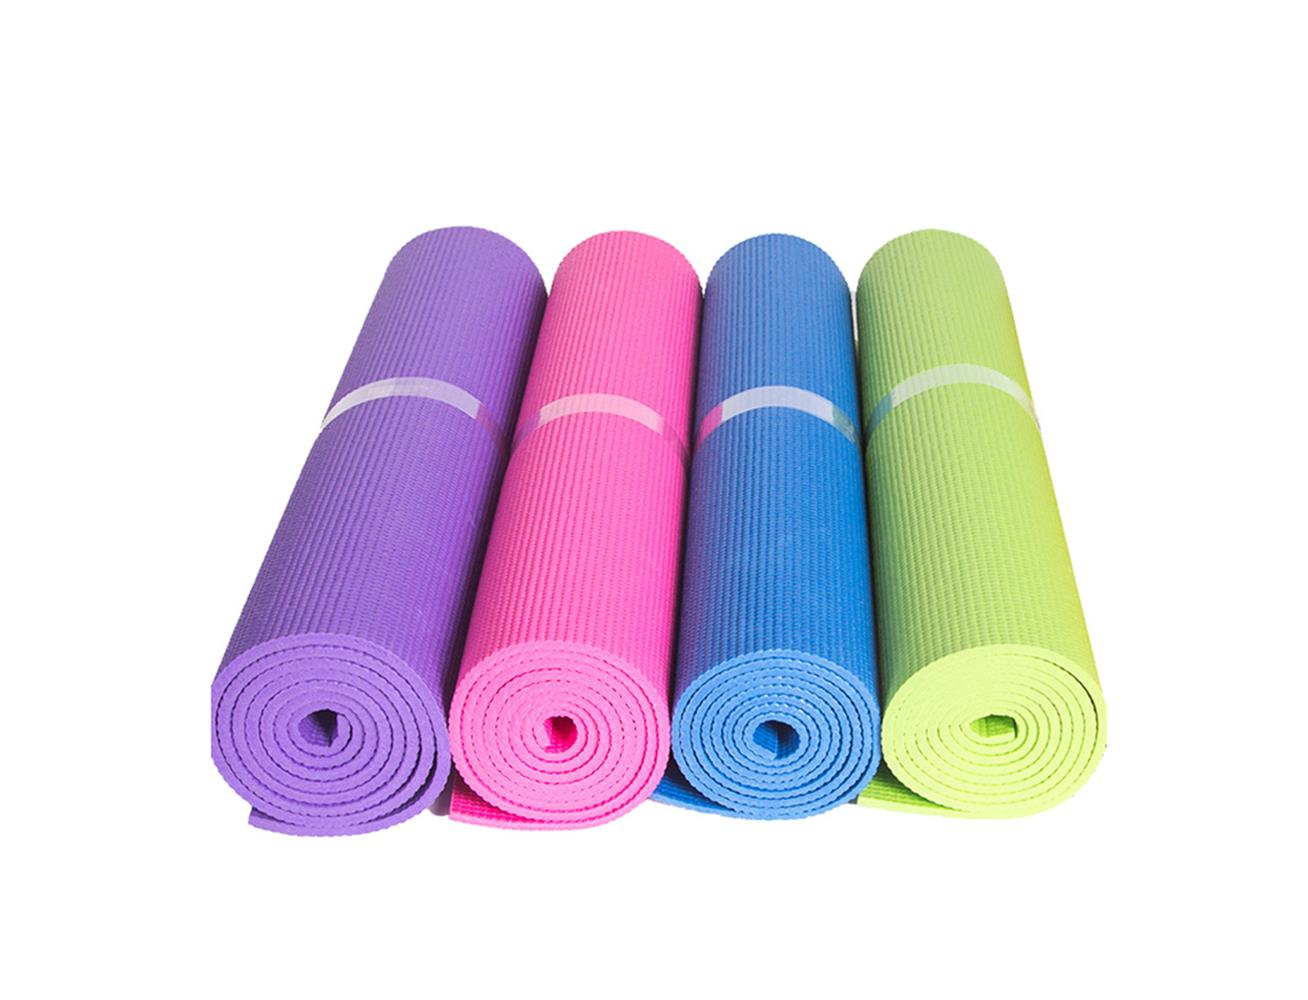 MISCELLANEOUS YOGA MAT